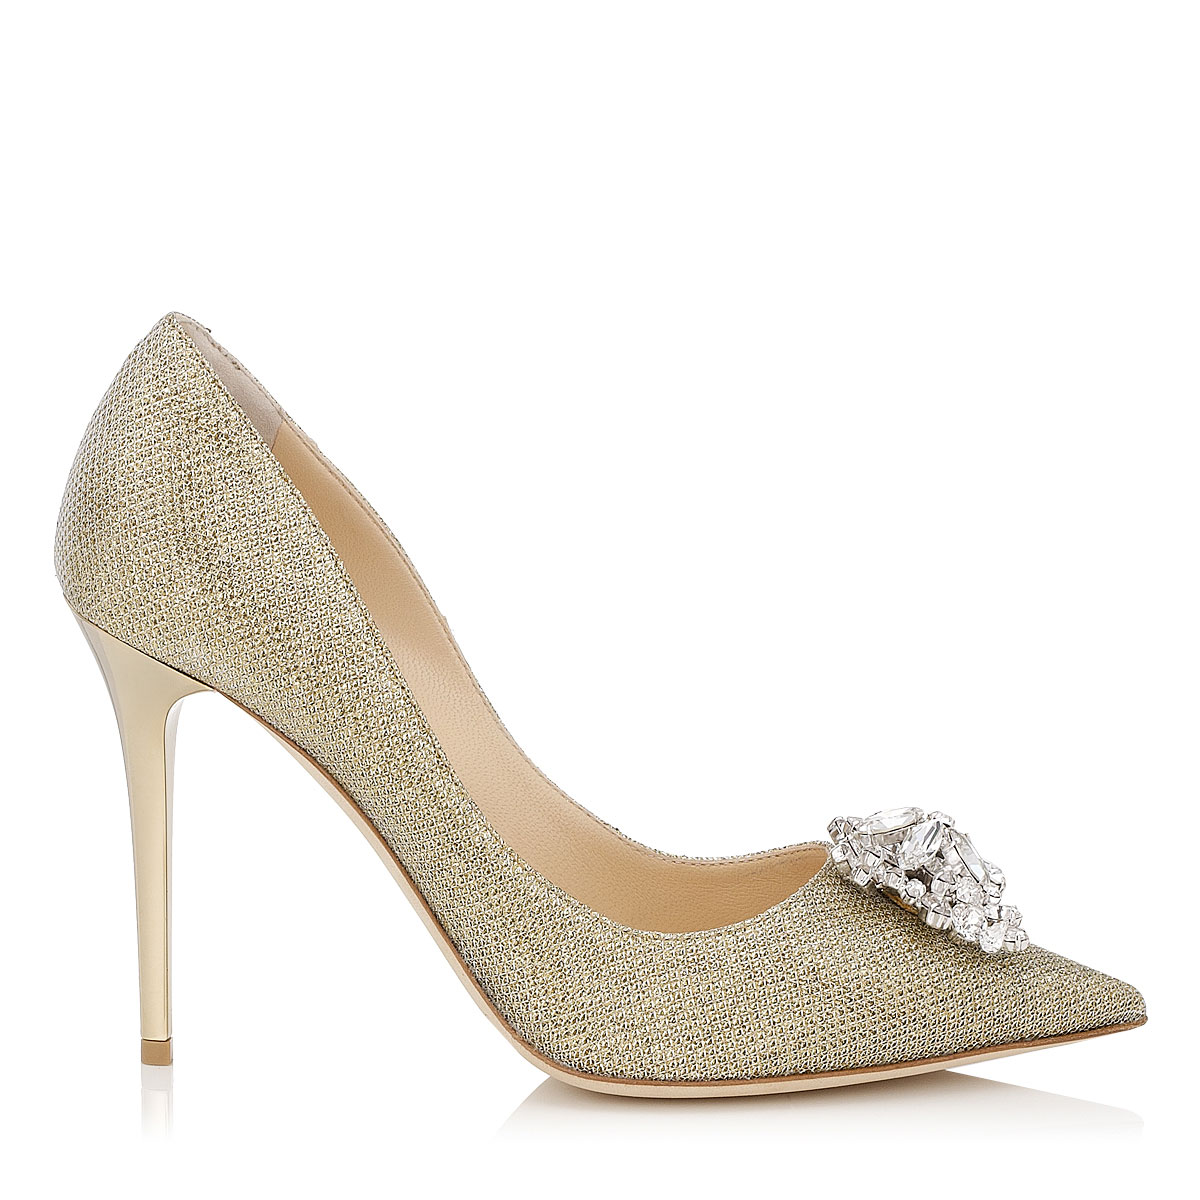 MANDA Gold Lamé Glitter Pumps with Crystal Detail